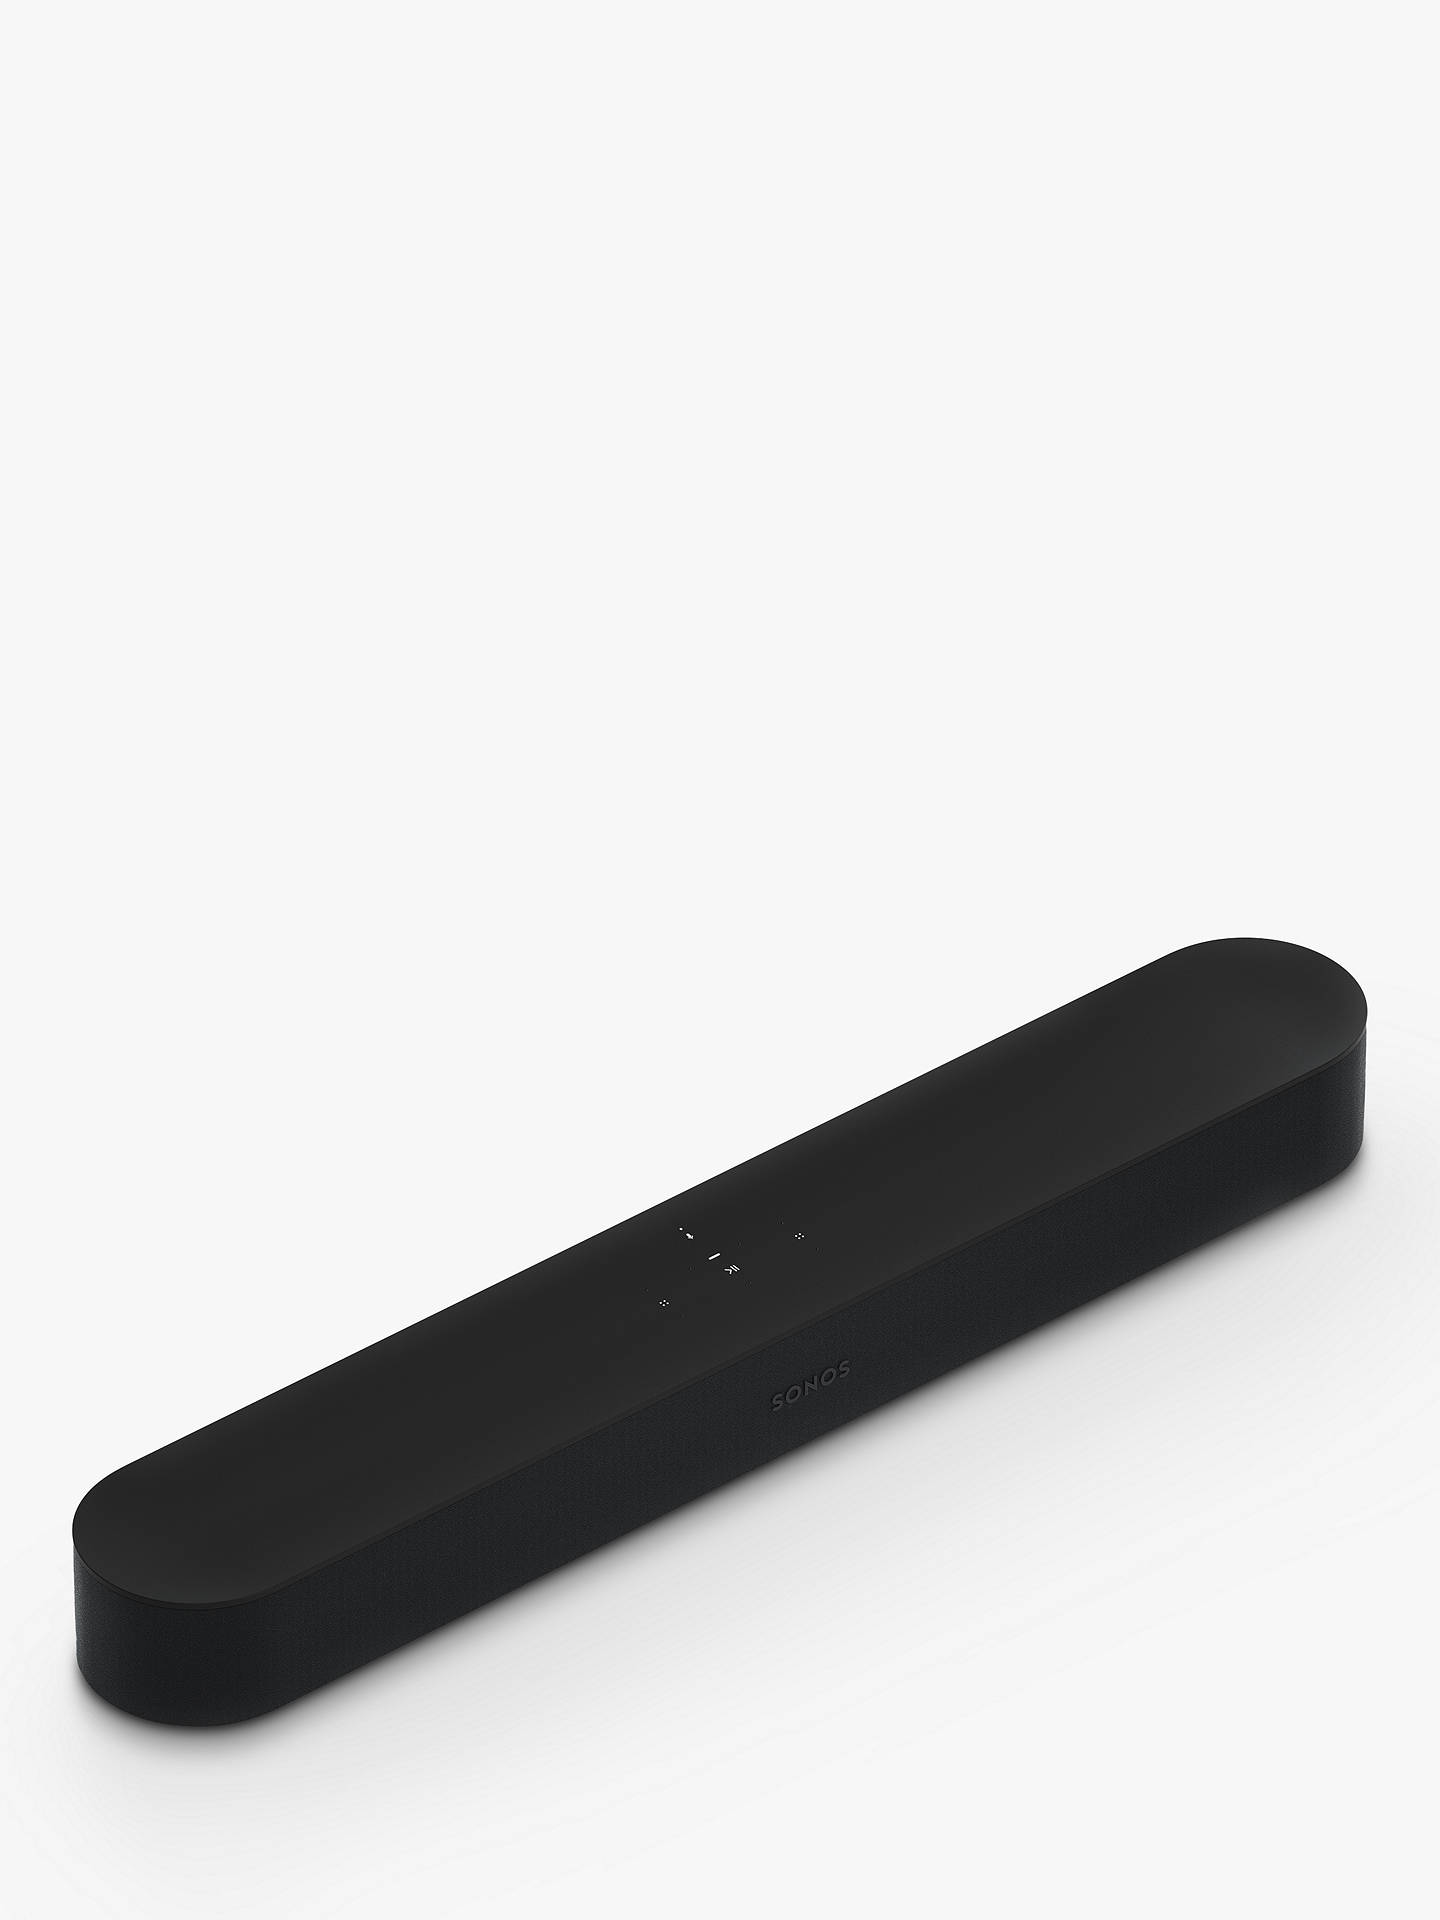 Buy Sonos Beam Compact Smart Sound Bar with Voice Control, Black Online at johnlewis.com